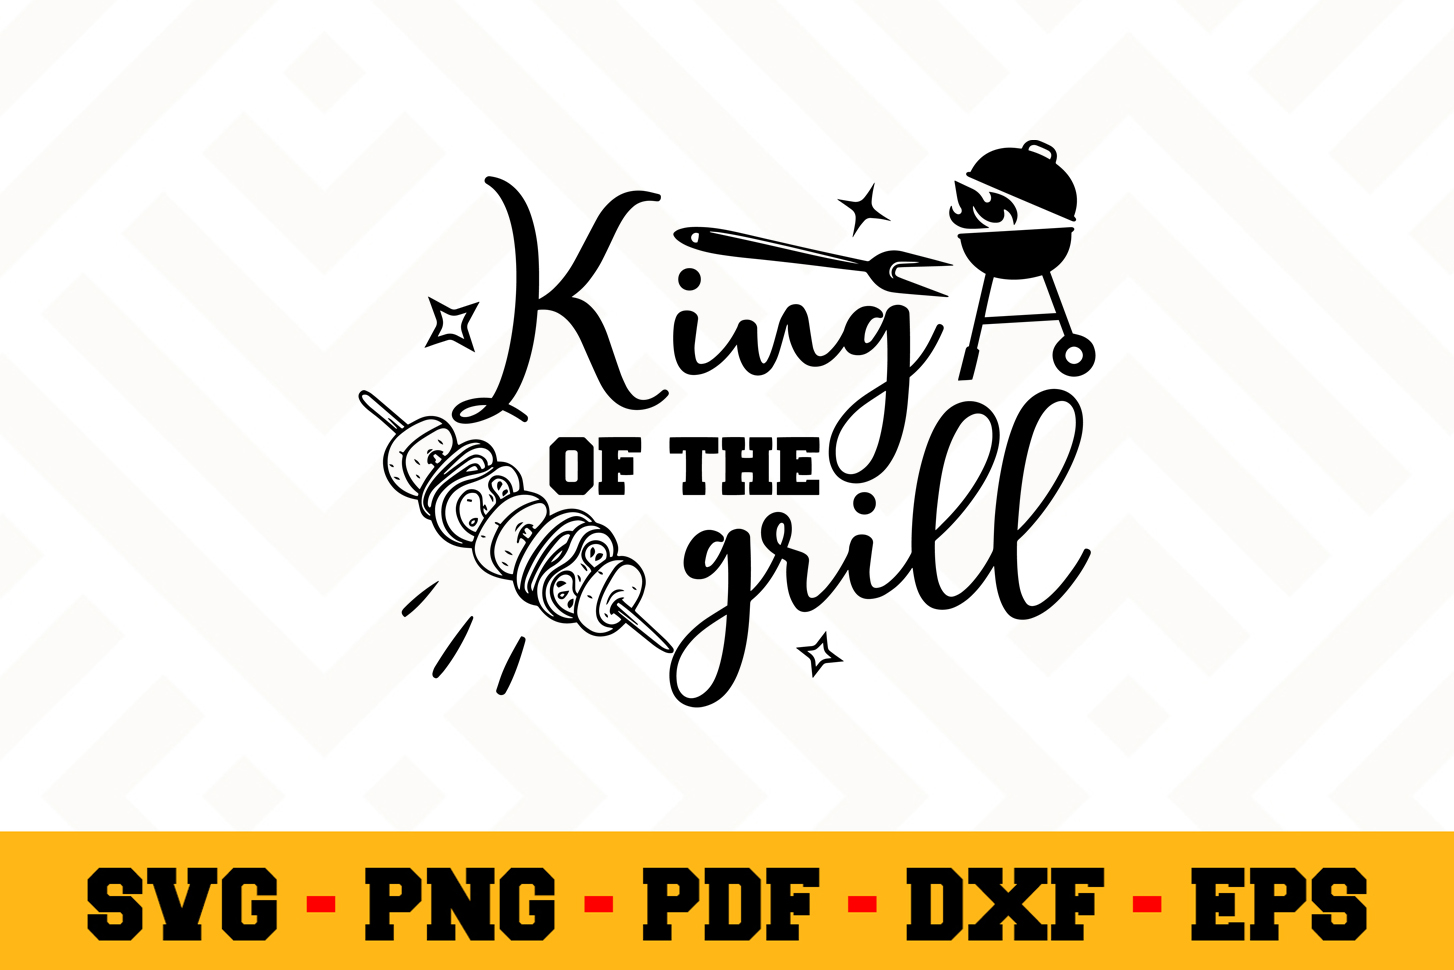 BBQ SVG Design n611 | Barbecue Grill SVG Cut File example image 1